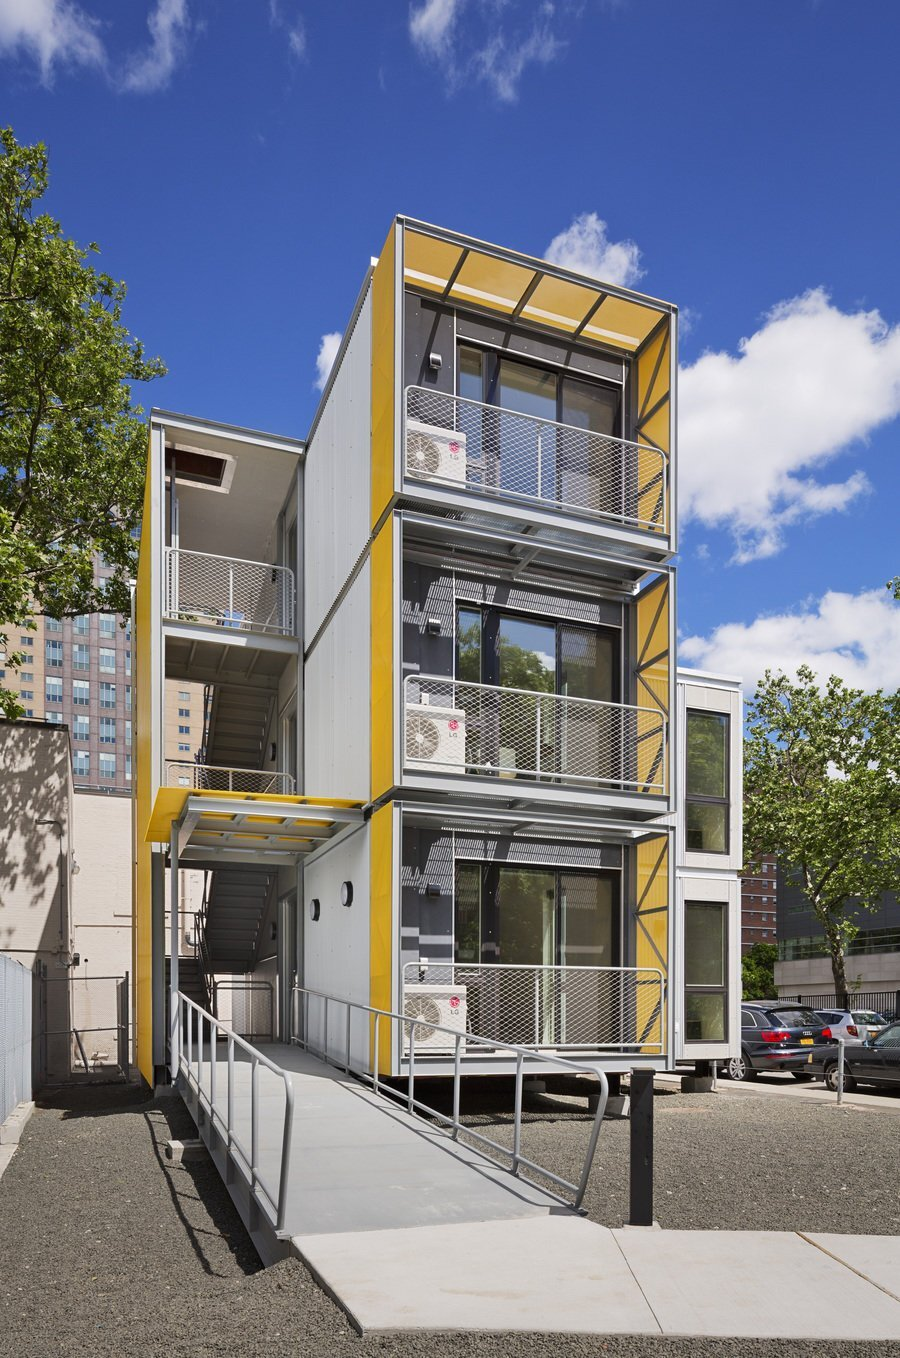 Modular disaster housing by garrison architects Modern house architect new york